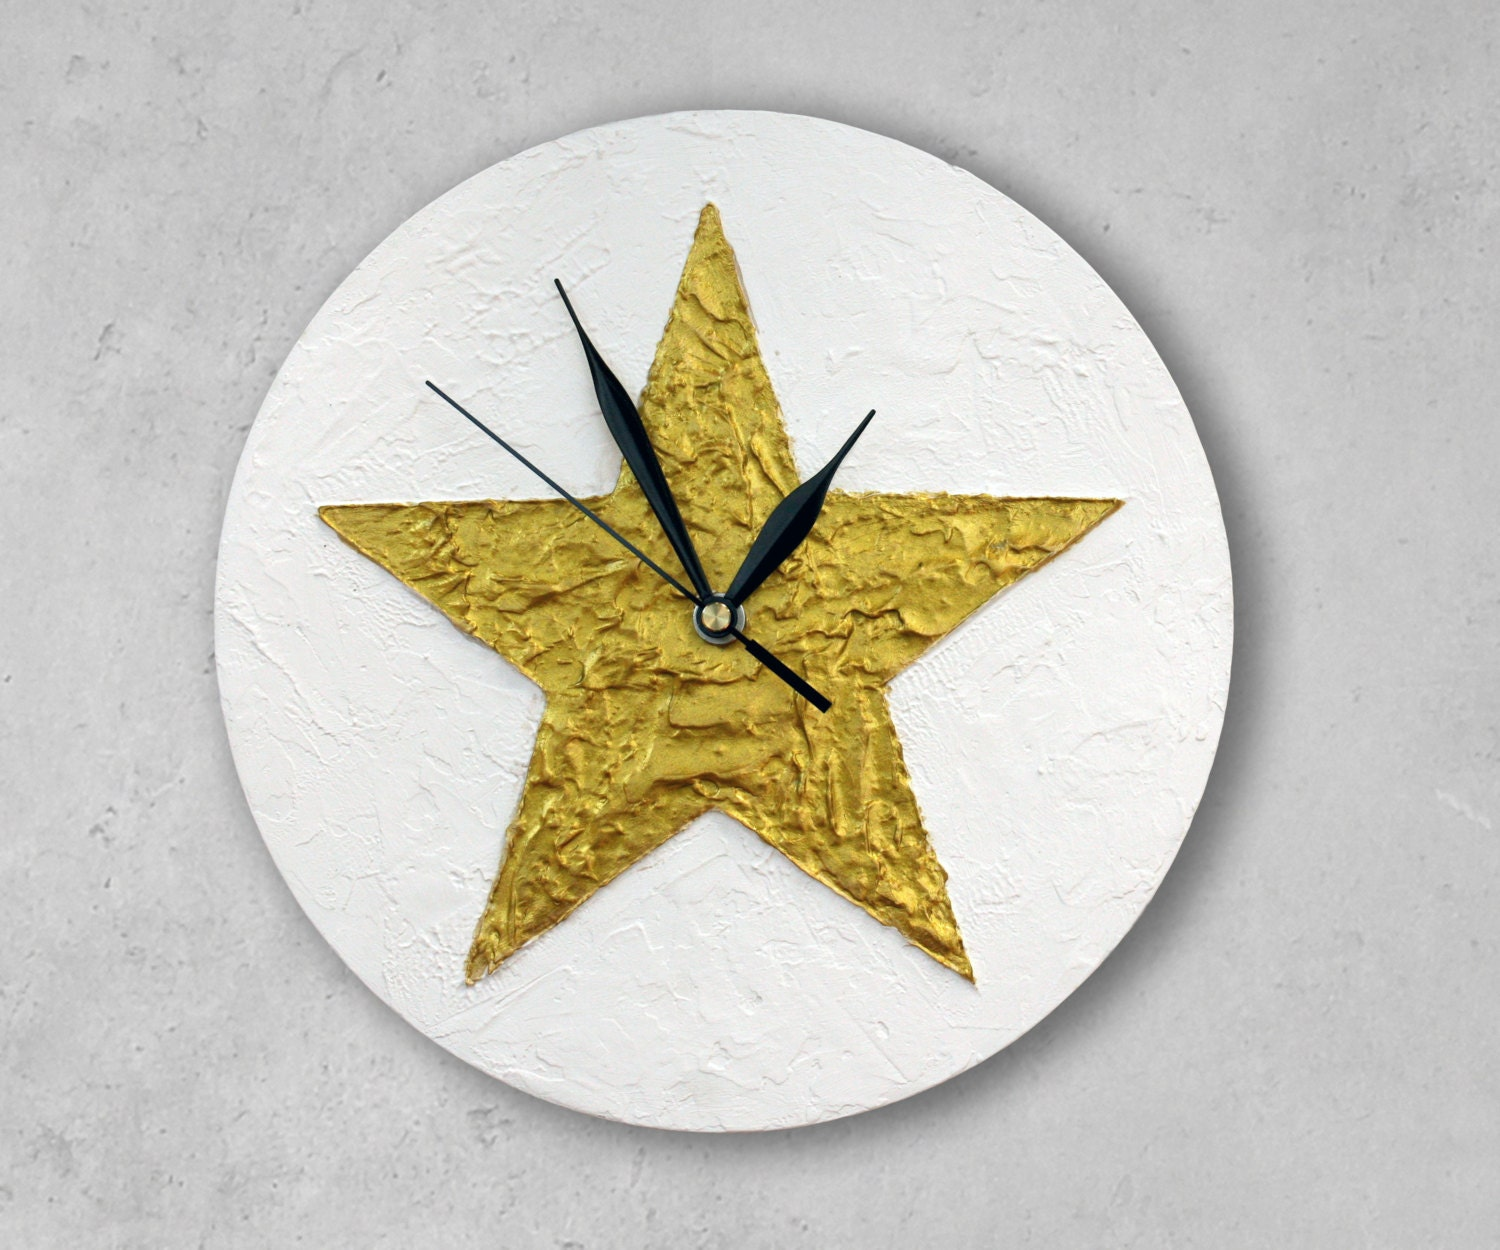 Star Wall Decor Ideas: Texas STAR WALL CLOCK Gold Star Home Decor Christmas Decor